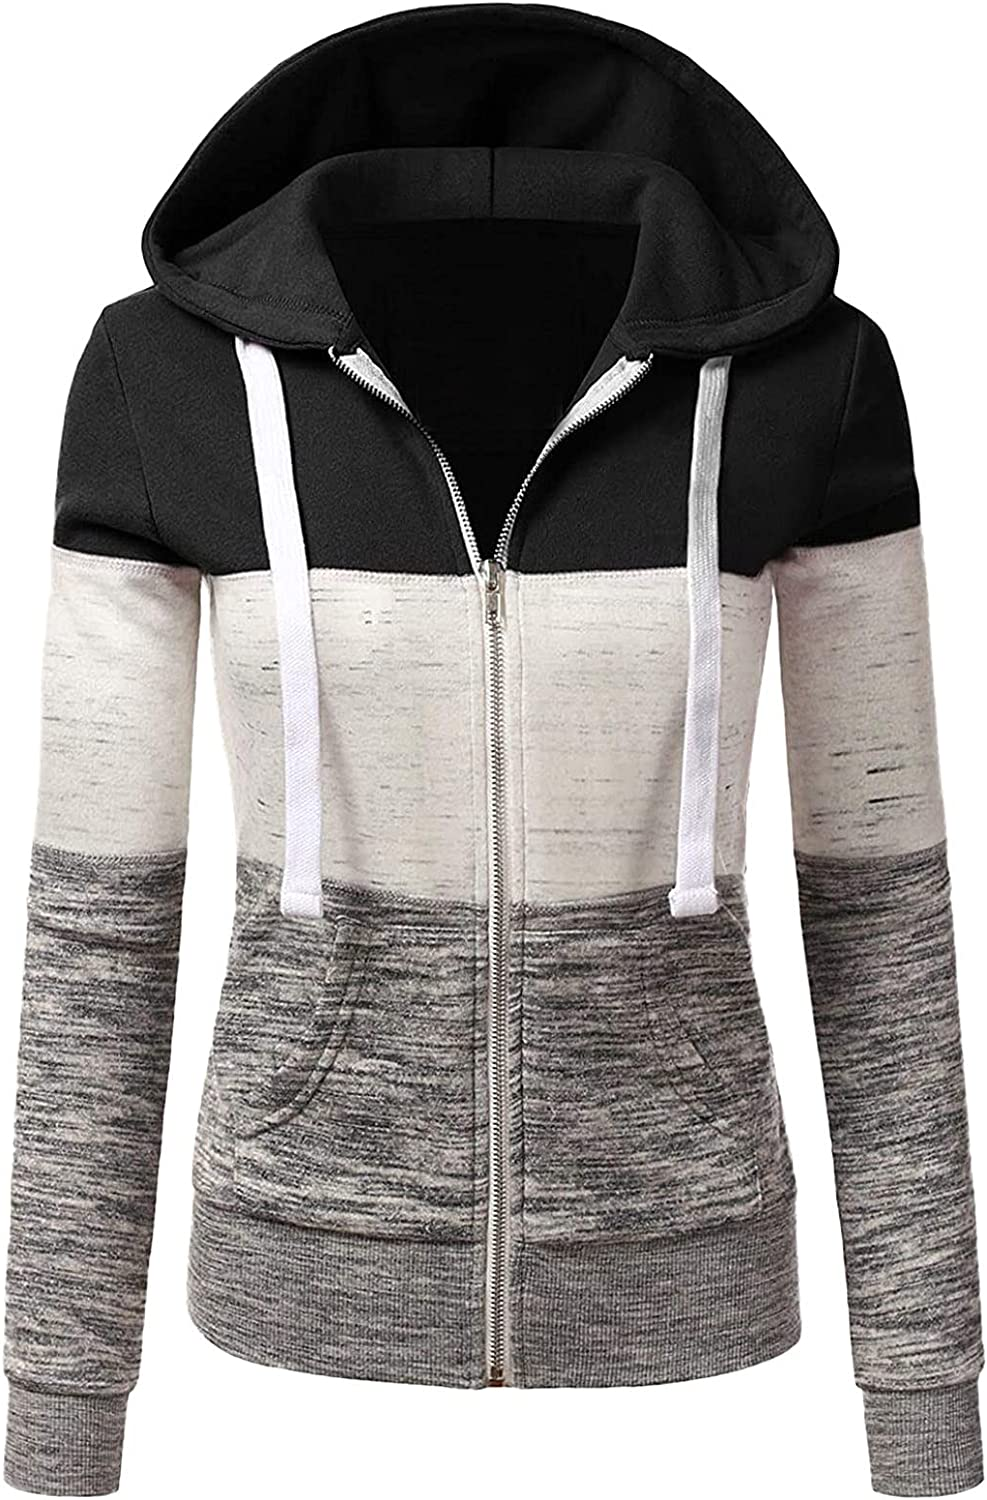 Sweatshirts for Women Color Block Hoodie Sweatshirts Jumper Stitching Color Drawstring Pullover Casual Tops with Pockets